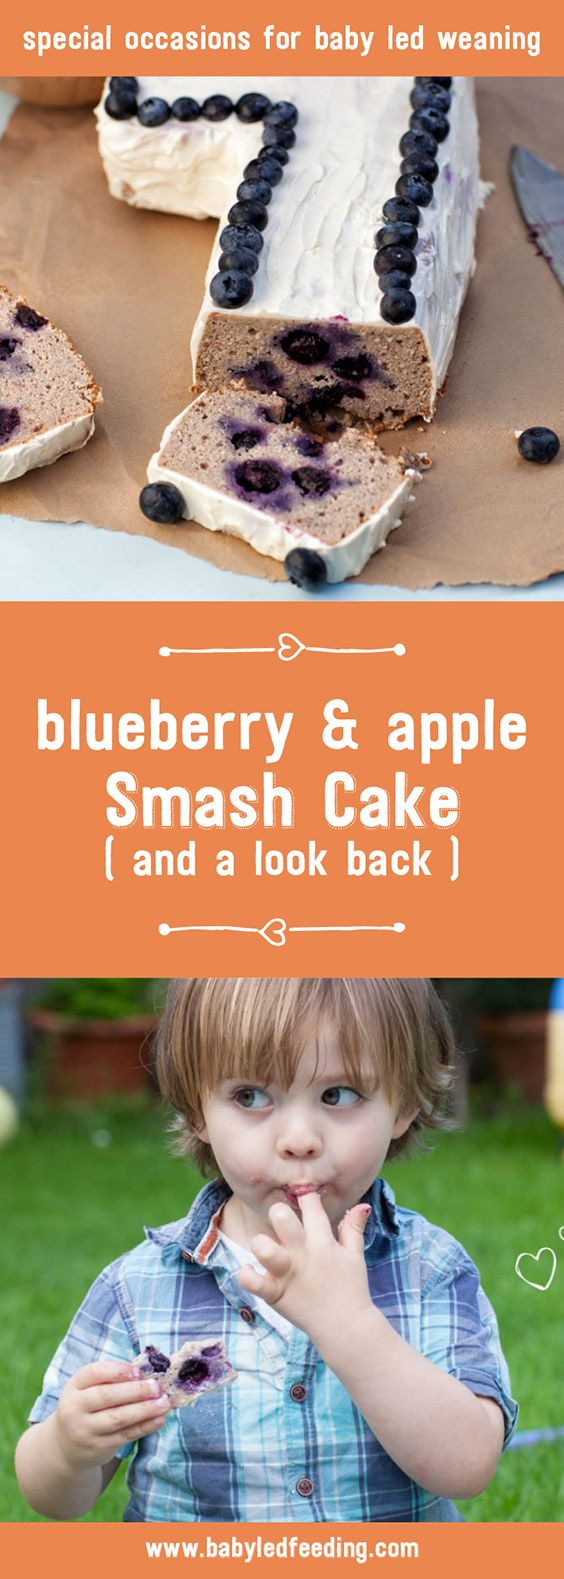 A delicious and super healthy birthday smash cake ideal for a baby led weaning very first birthday. Sweetened with only fruit and yummy!